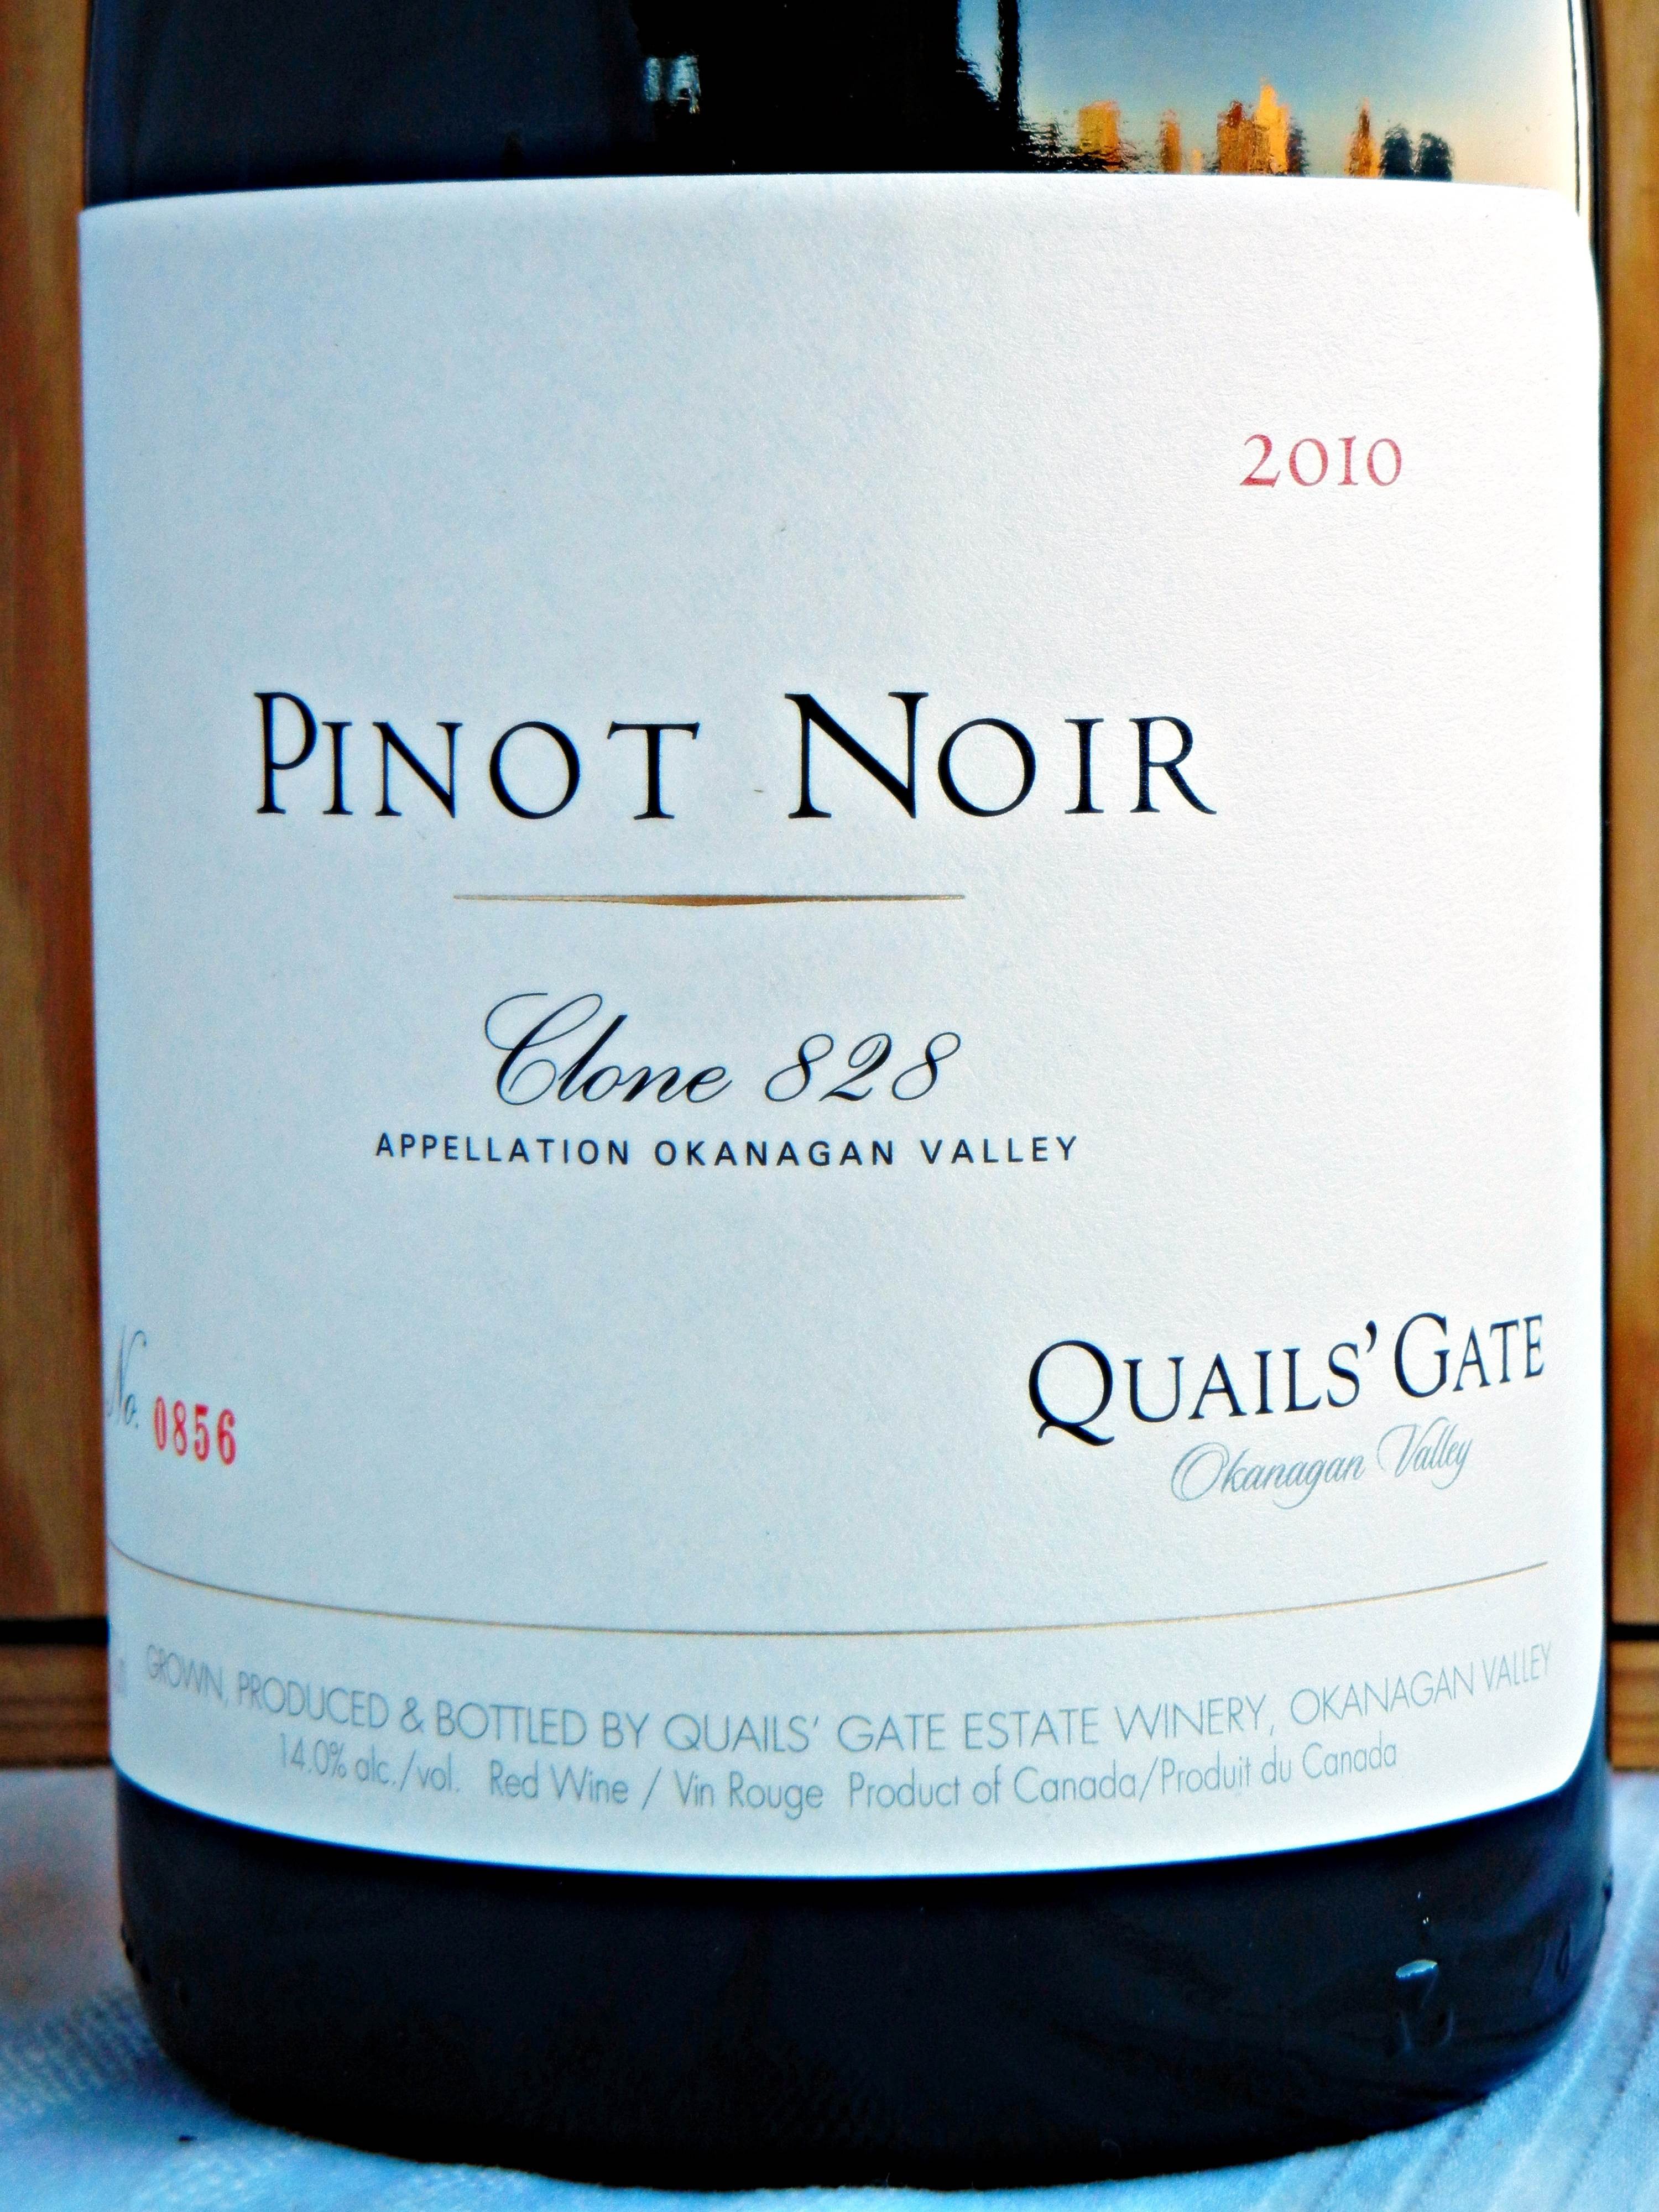 Quails' Gate Clone 828 Pinot Noir 2010 Label - BC Pinot Noir Tasting Review 10